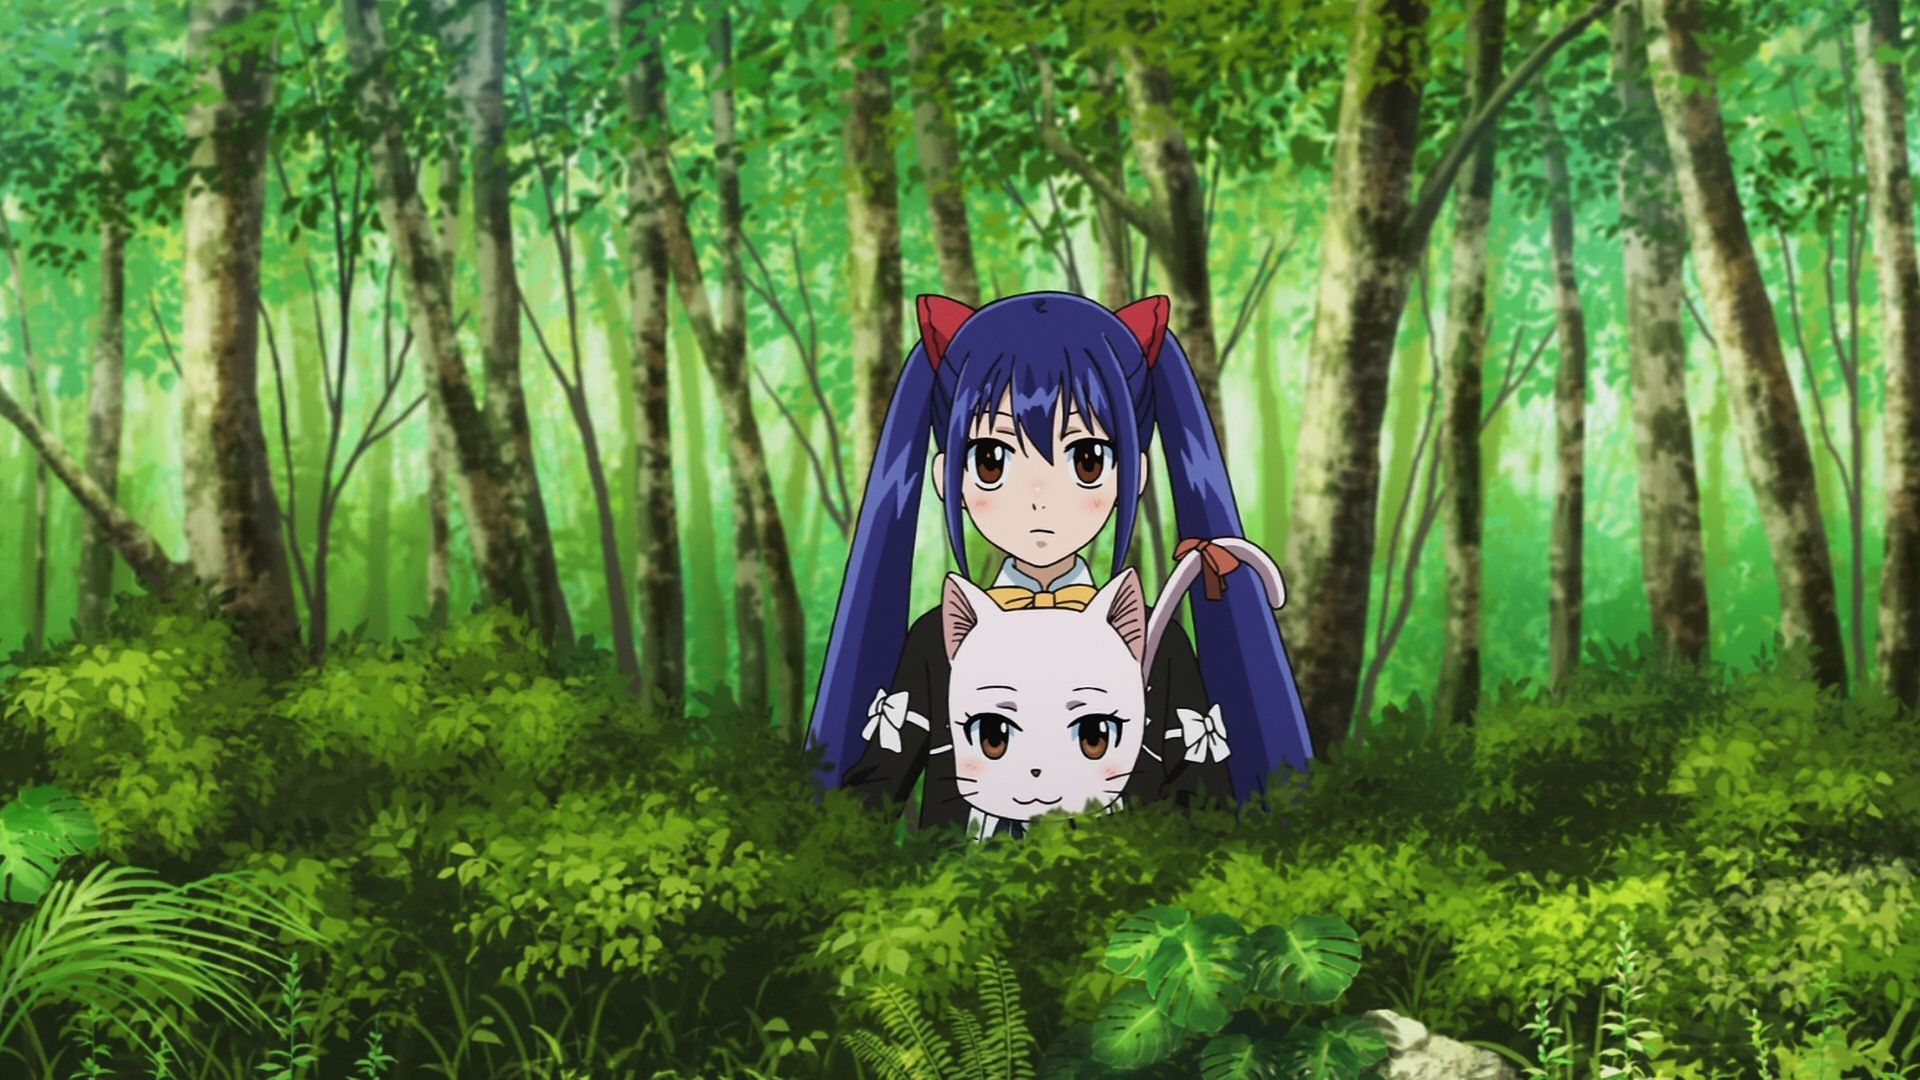 Wendy and Charla - Wendy Marvell Wallpaper (32326322) - Fanpop